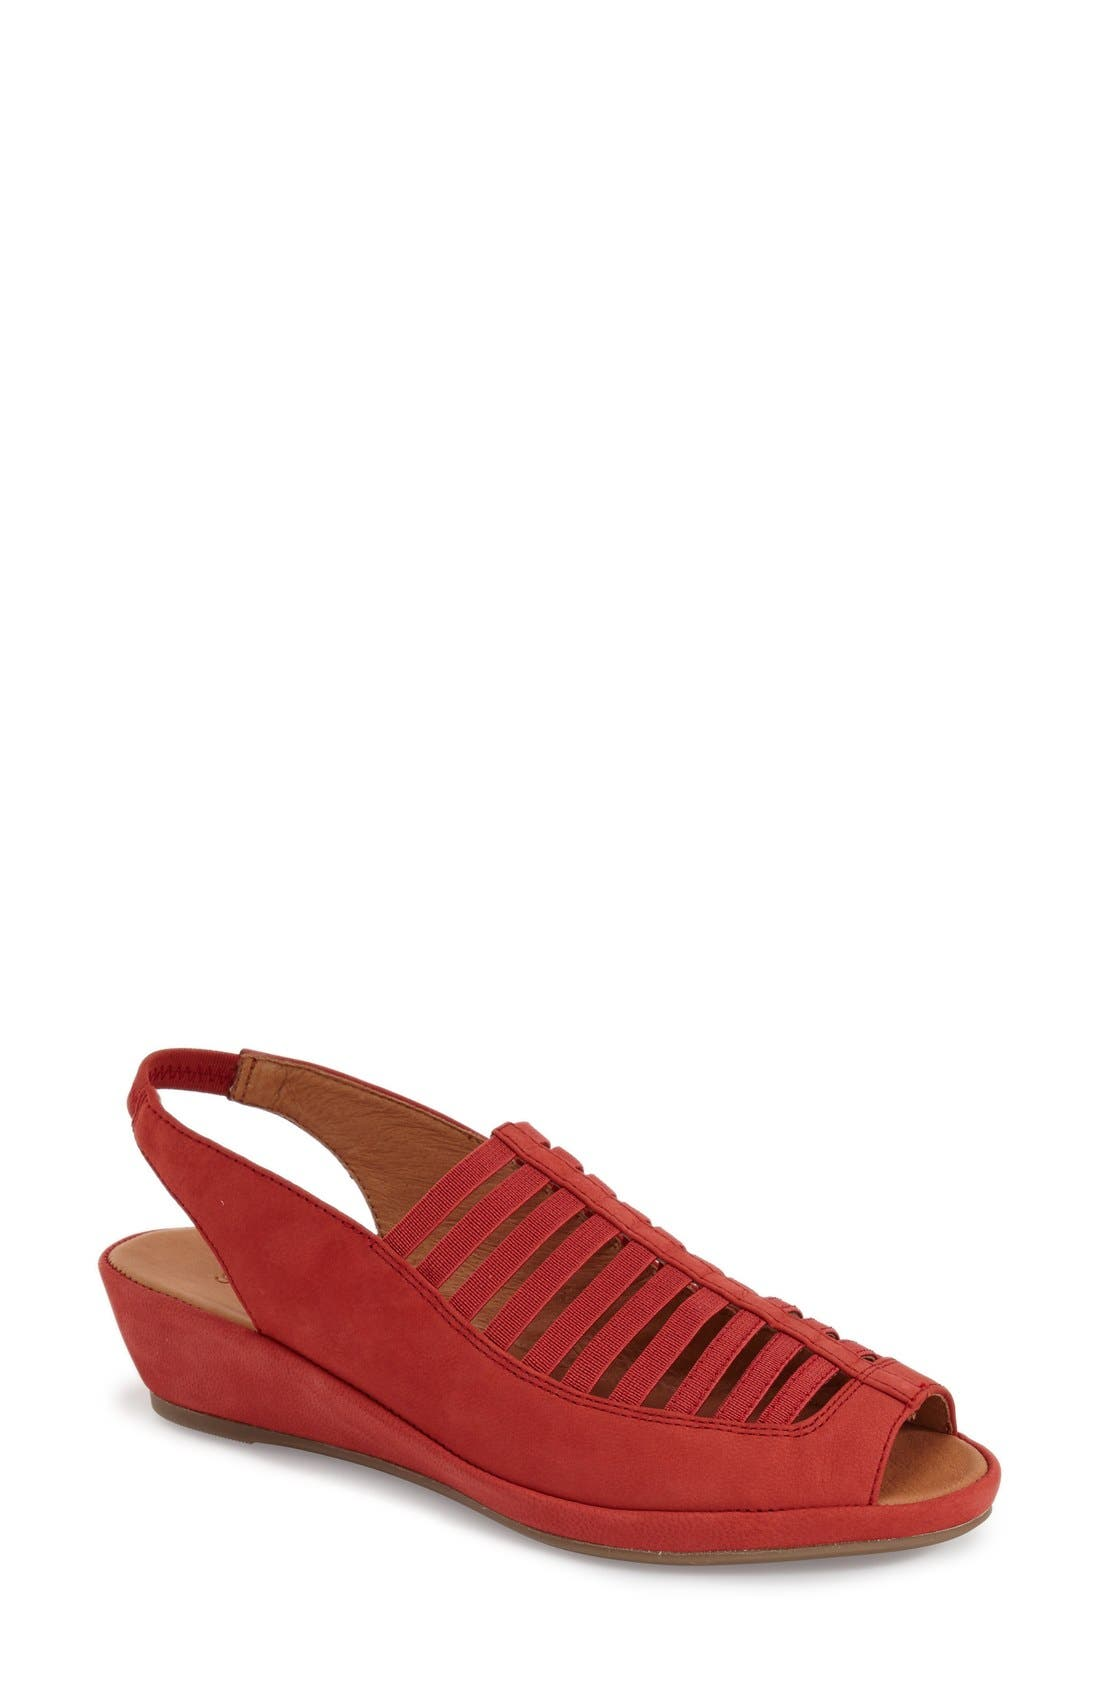 by Kenneth Cole 'Lee' Sandal,                             Main thumbnail 7, color,